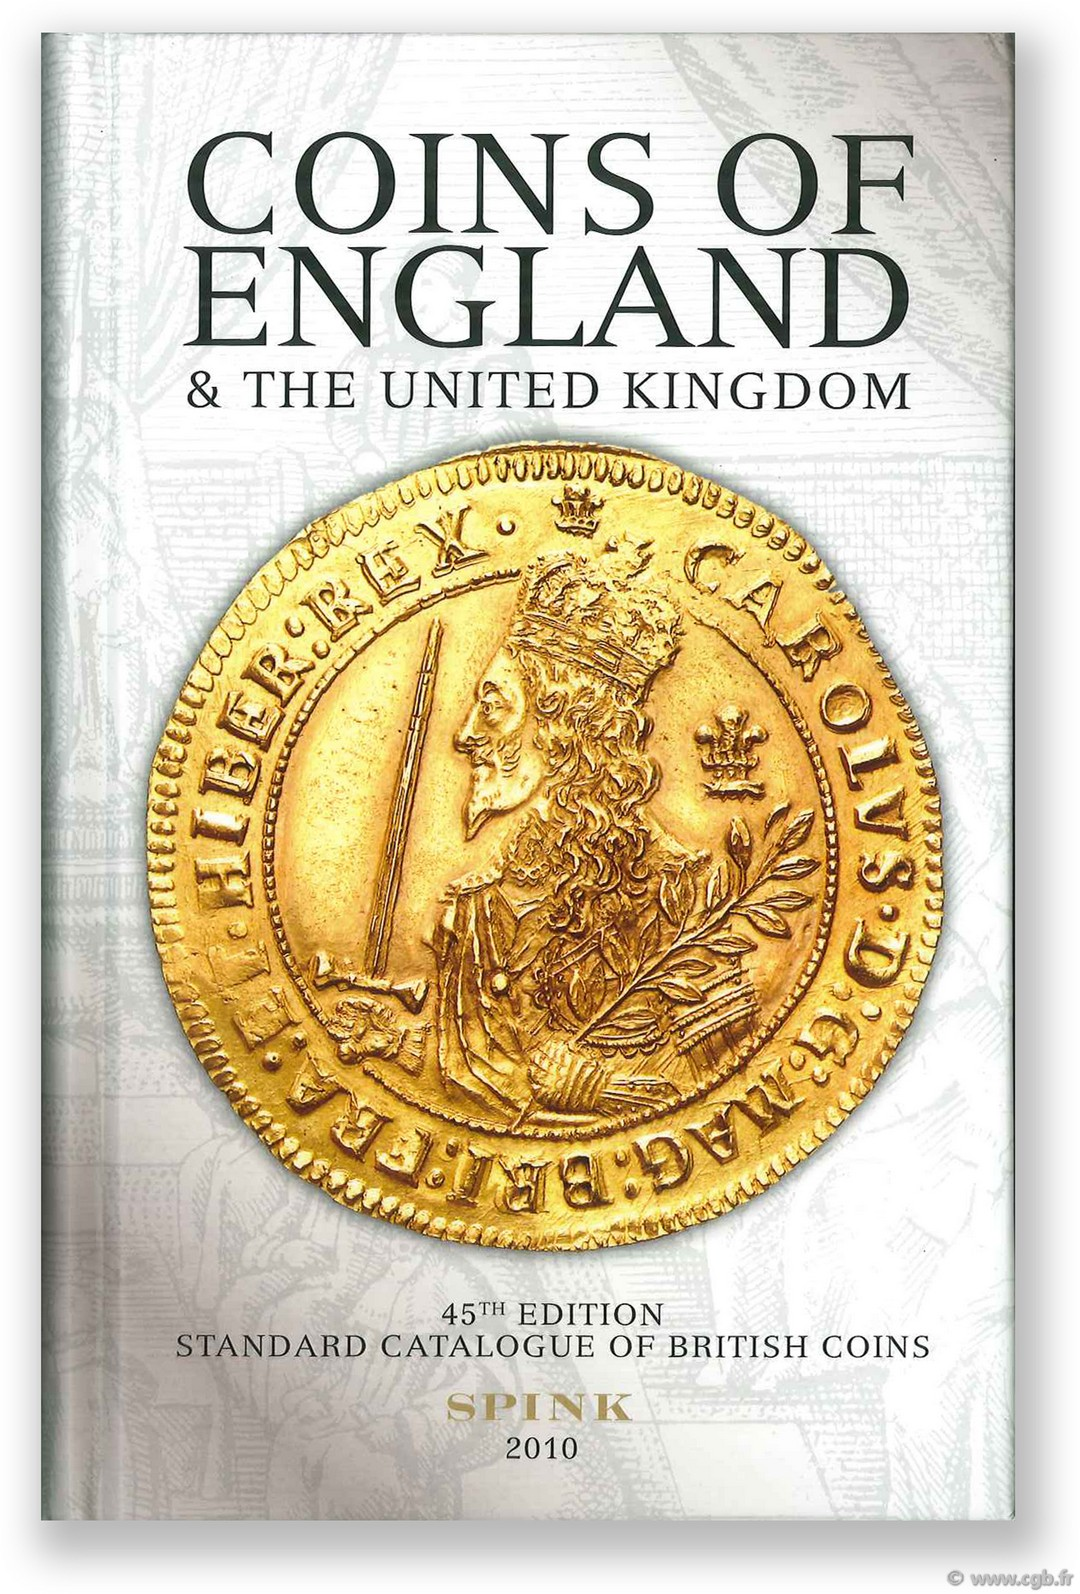 Coins of England and the United Kingdom, 45th edition - 2010 sous la direction de Philip Skingley